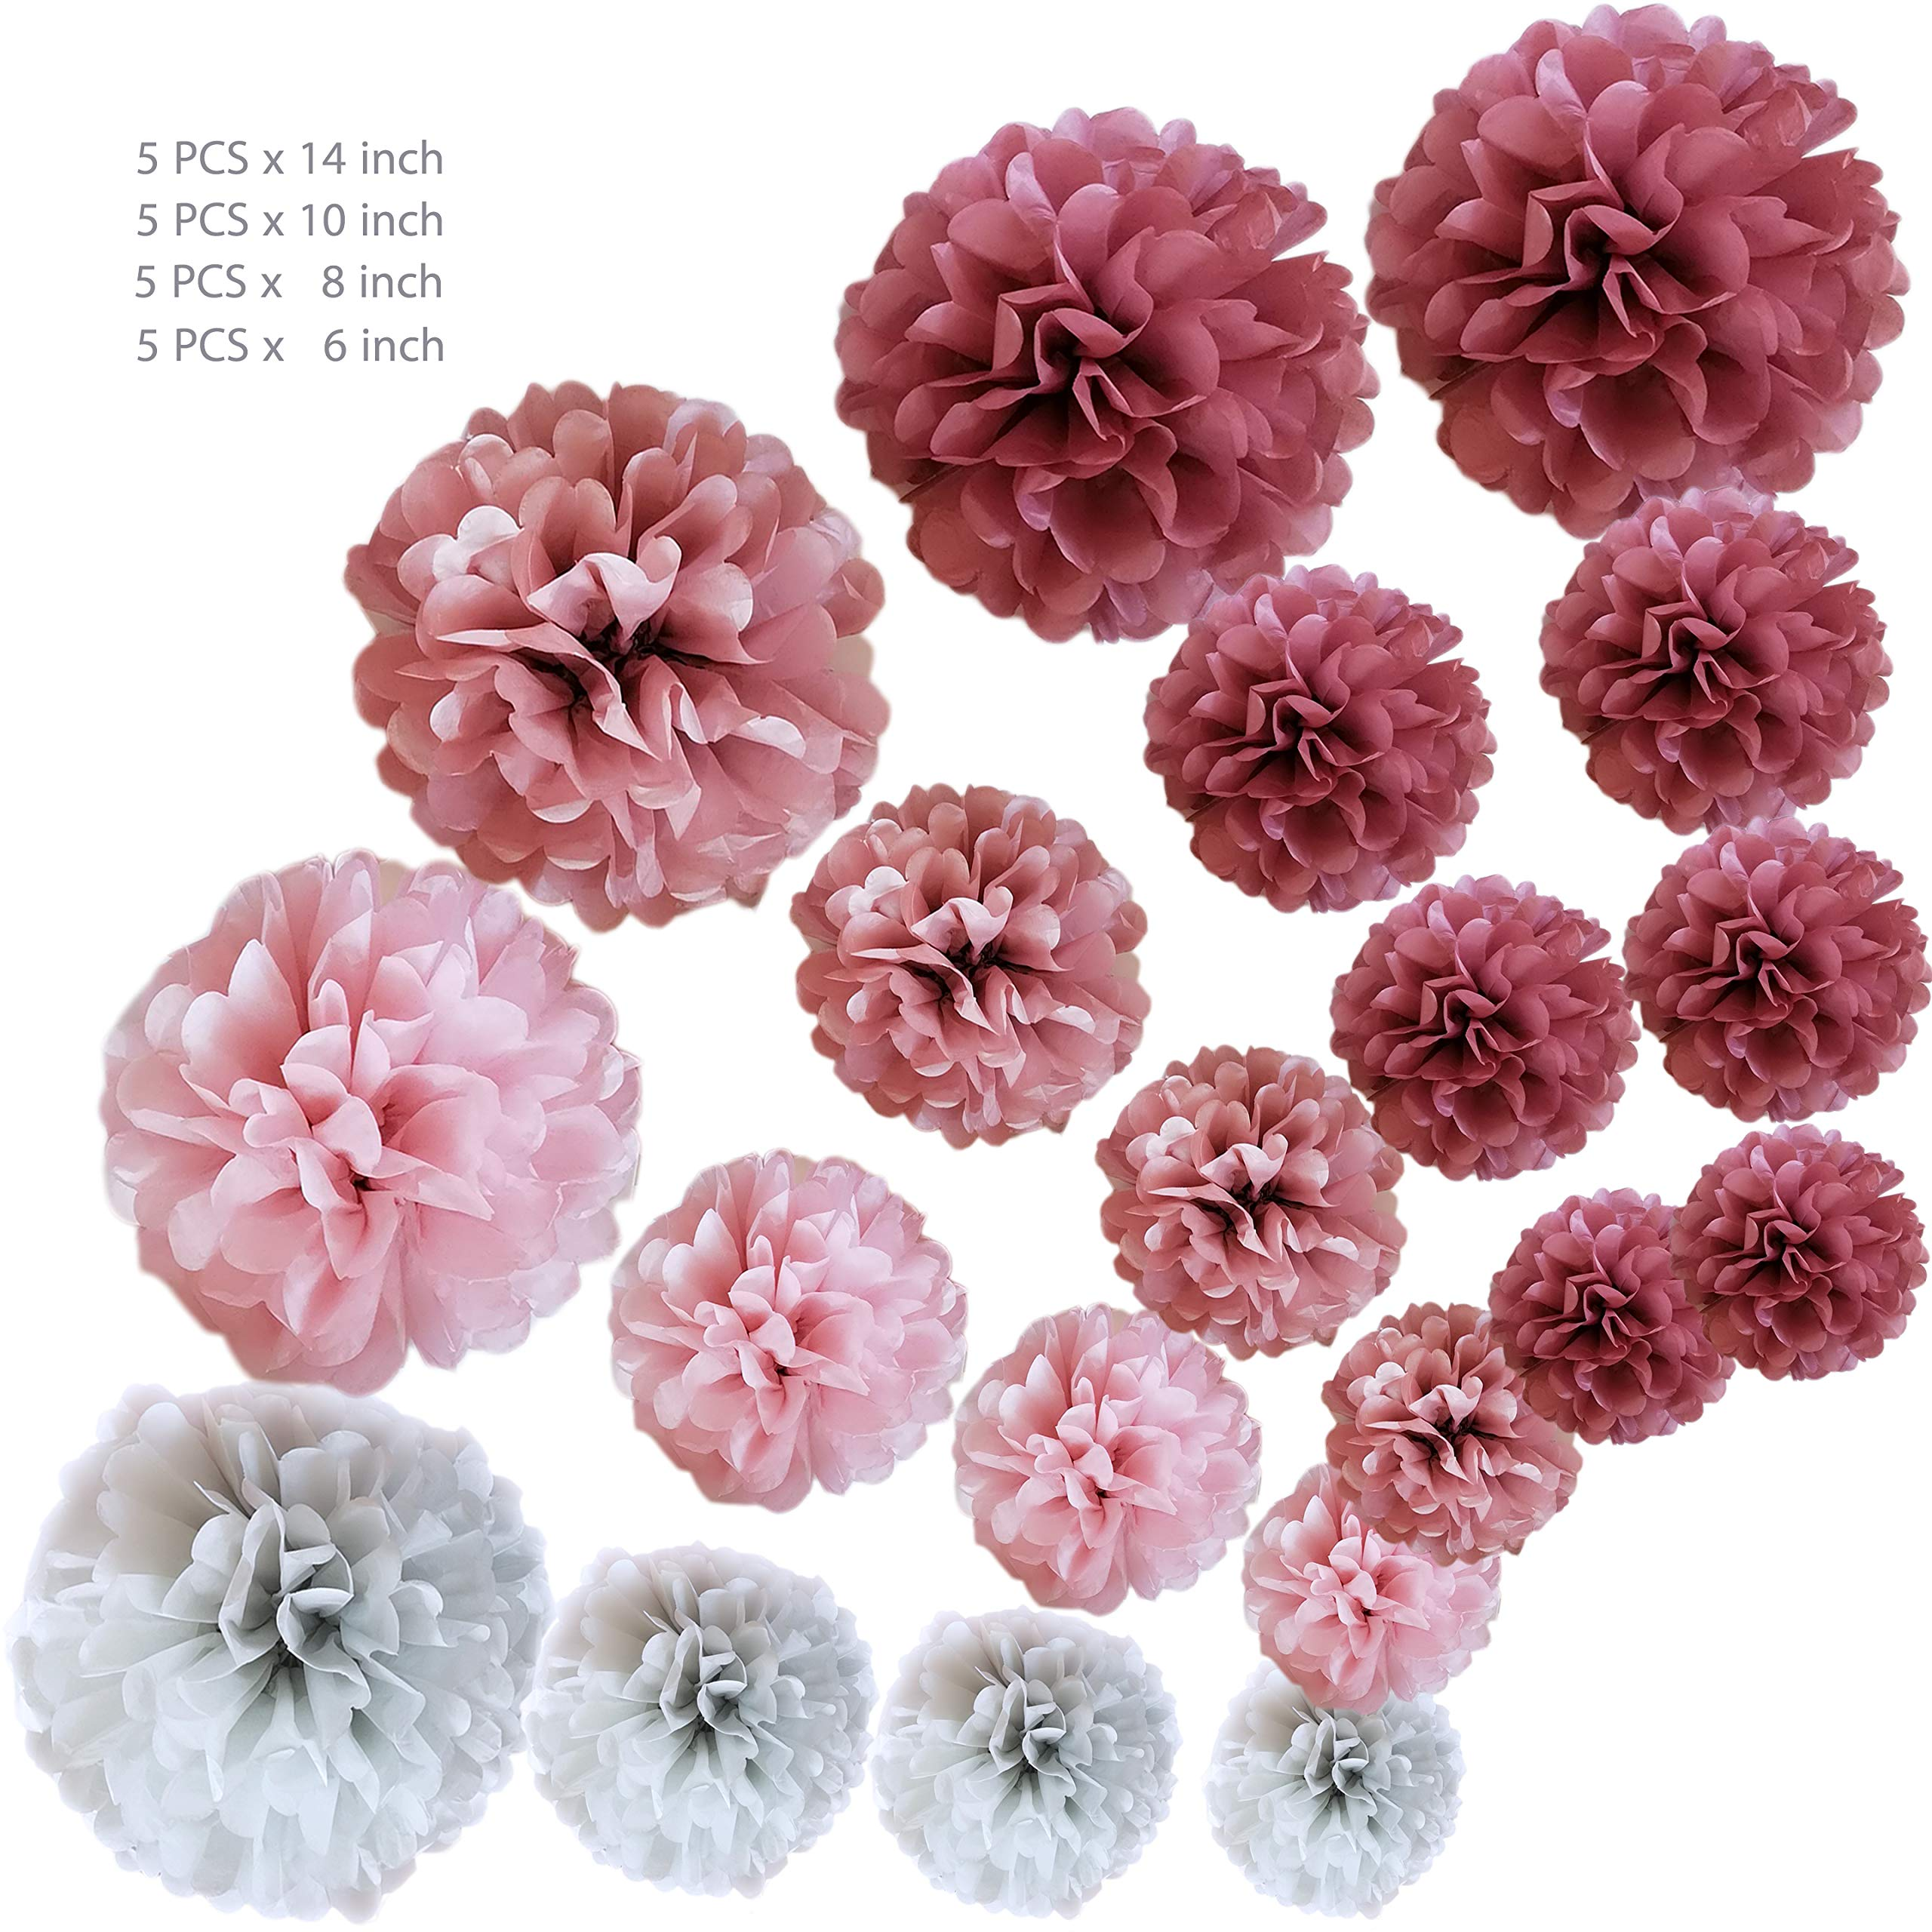 VINANT 20 PCS Tissue Paper Pom Poms - Paper Flower - Party Decoration for Birthday Party - Baby Shower - Bridal Shower - Wedding - Bachelorette - Dusty Rose, Mauve, Blush Pink, Grey - 14'', 10'', 8'', 6'' by VINANT (Image #5)